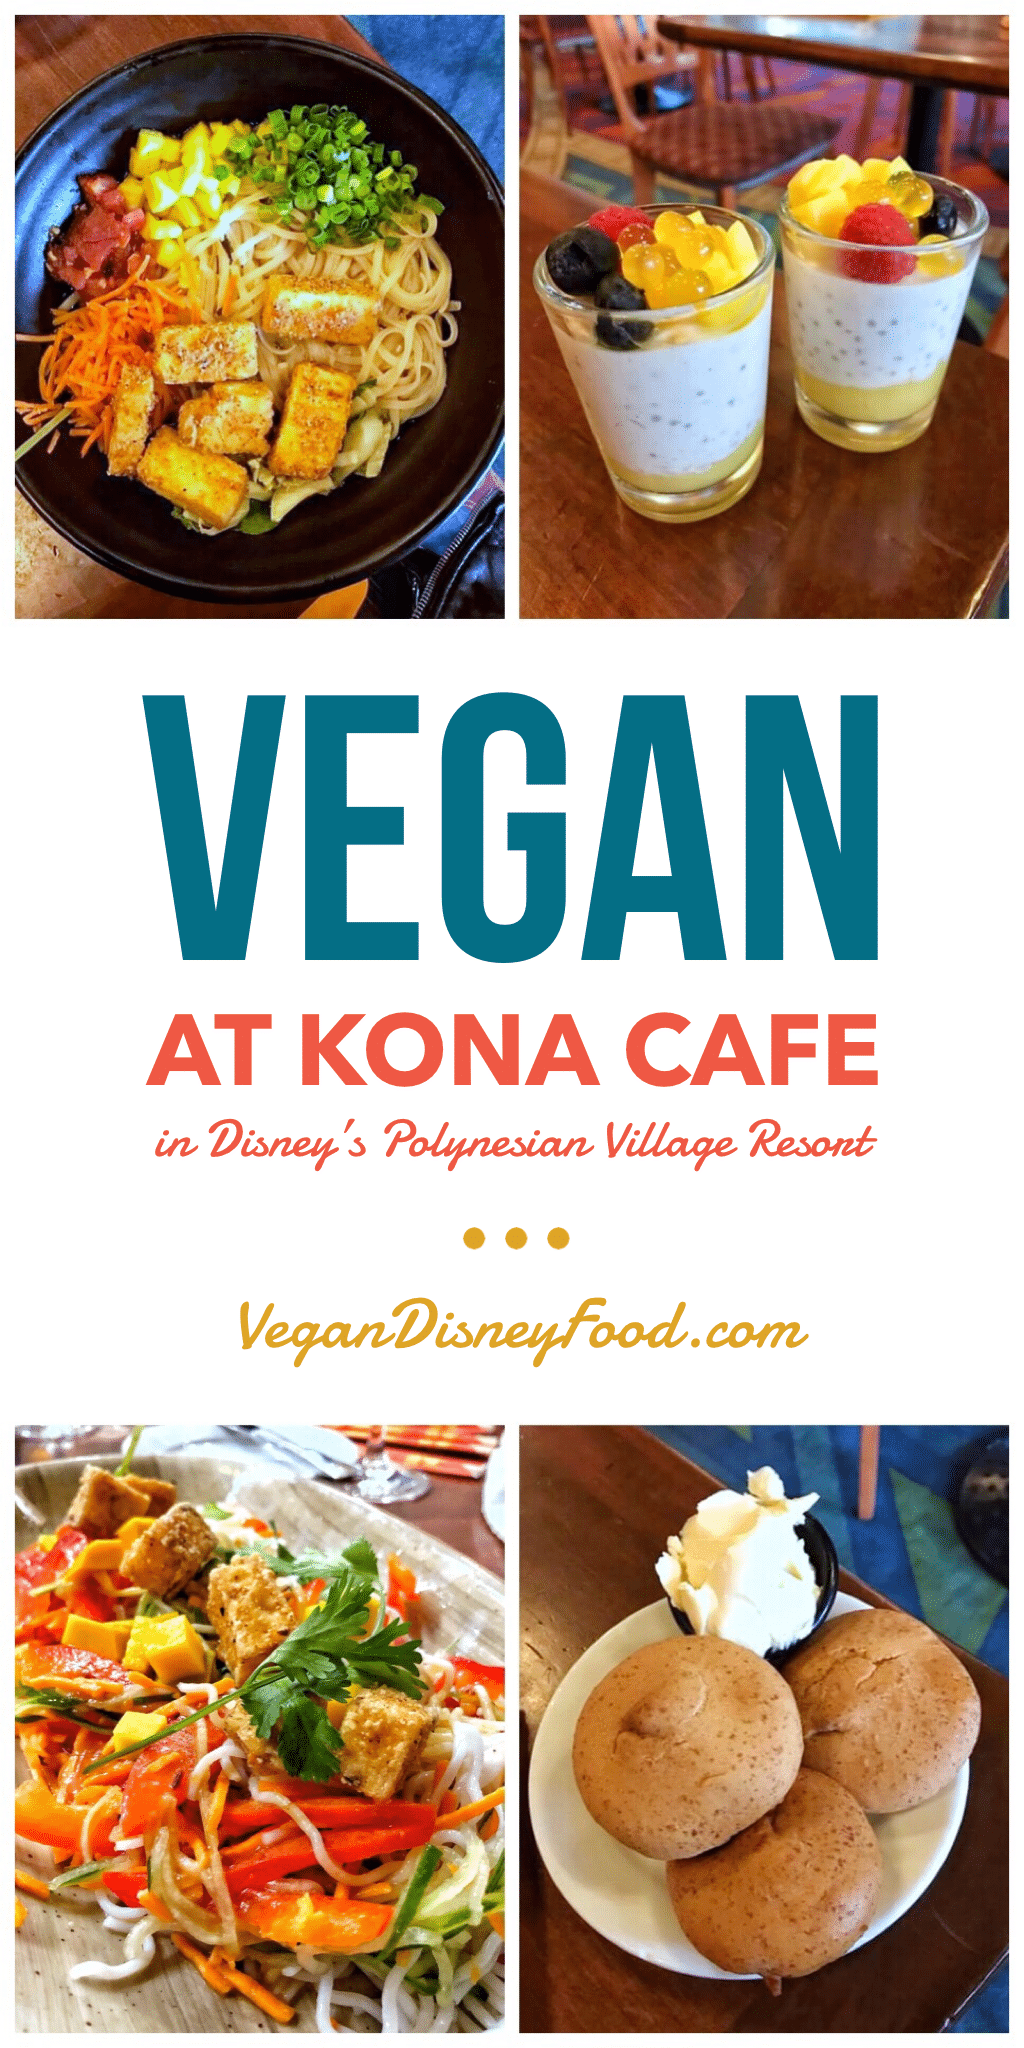 Vegan Options at Kona Cafe in Disney's Polynesian Village Resort at Walt Disney World